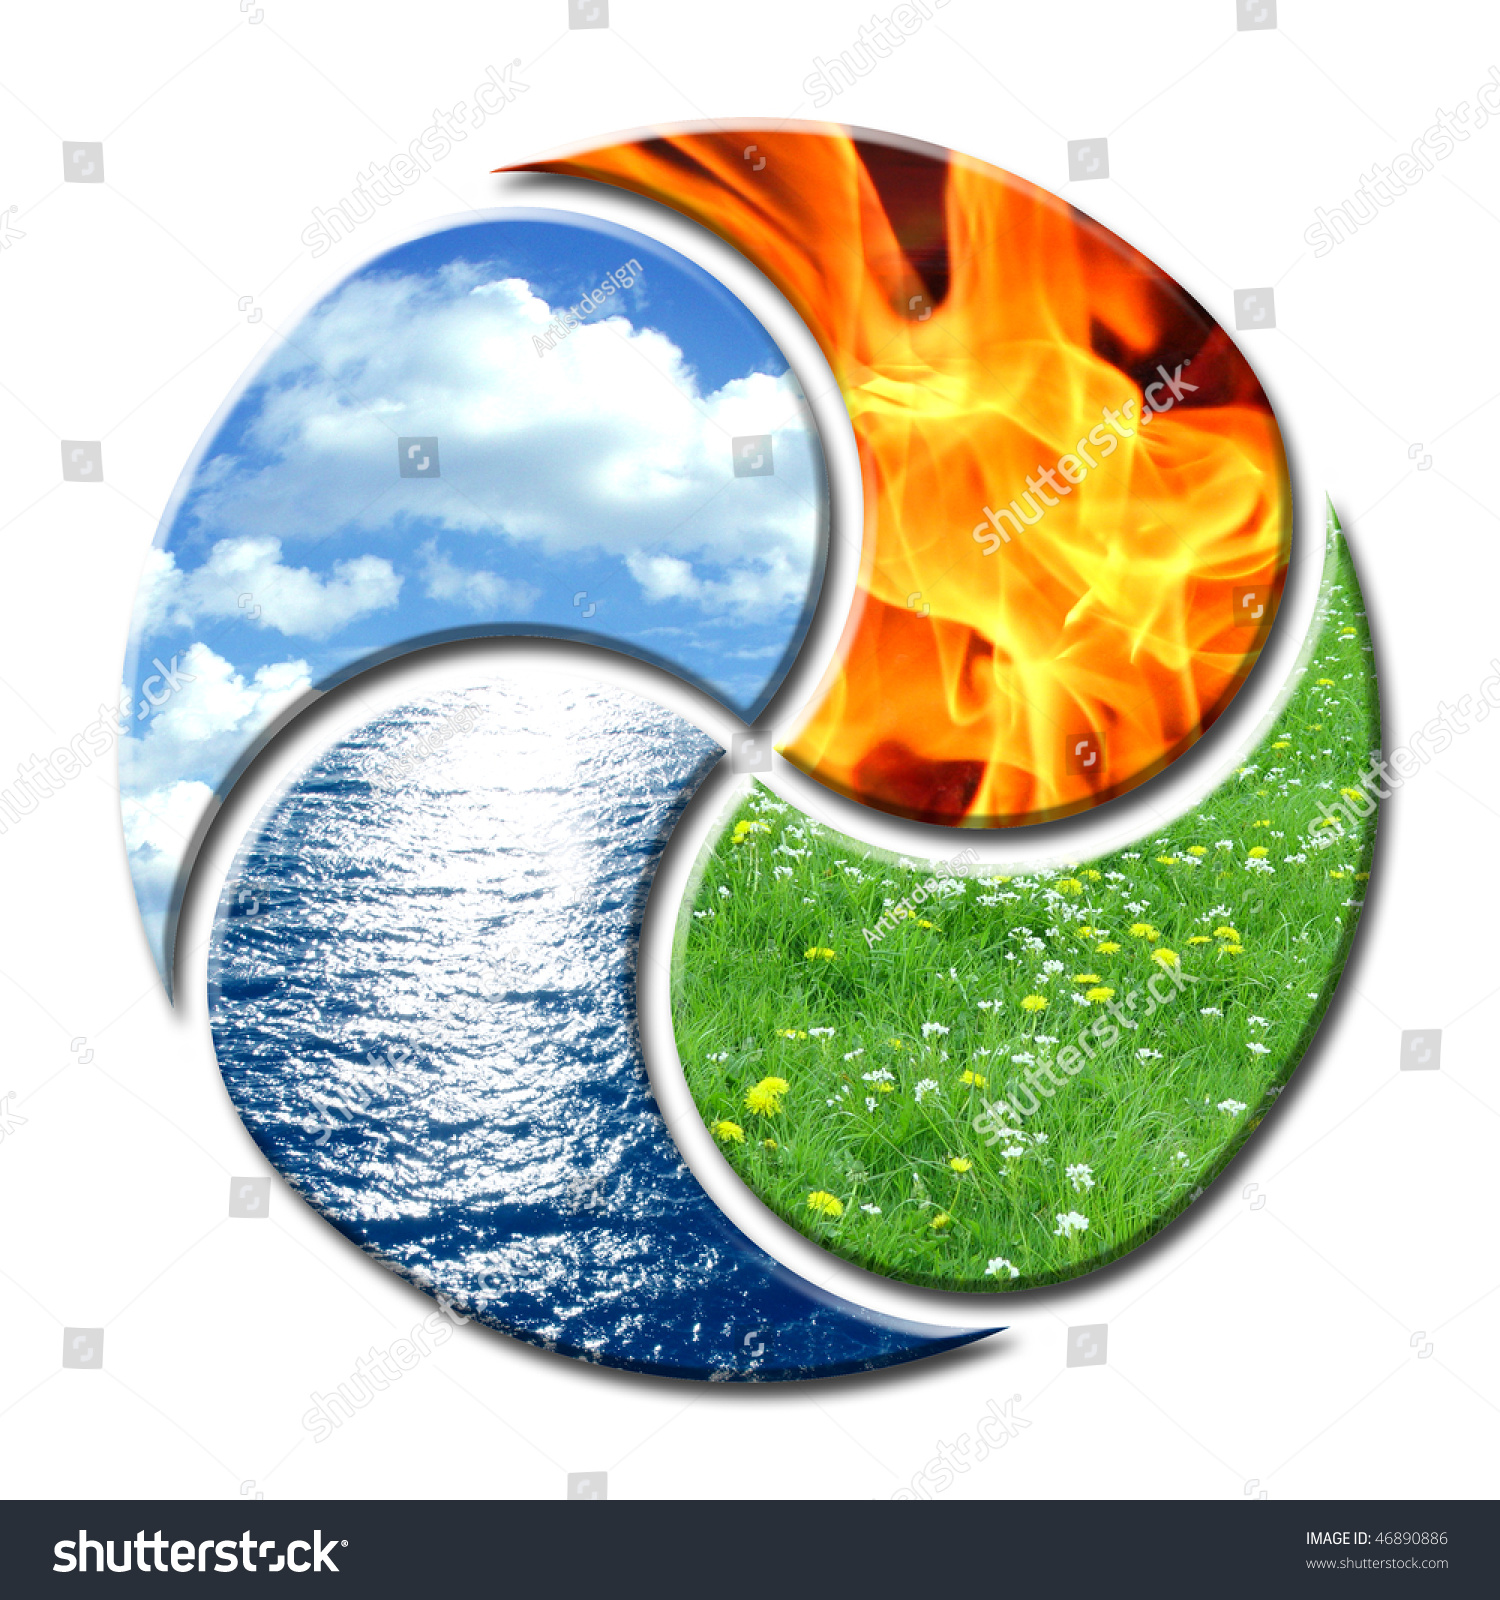 Premium composition of the four natural elements water, air, fire and  earth. They